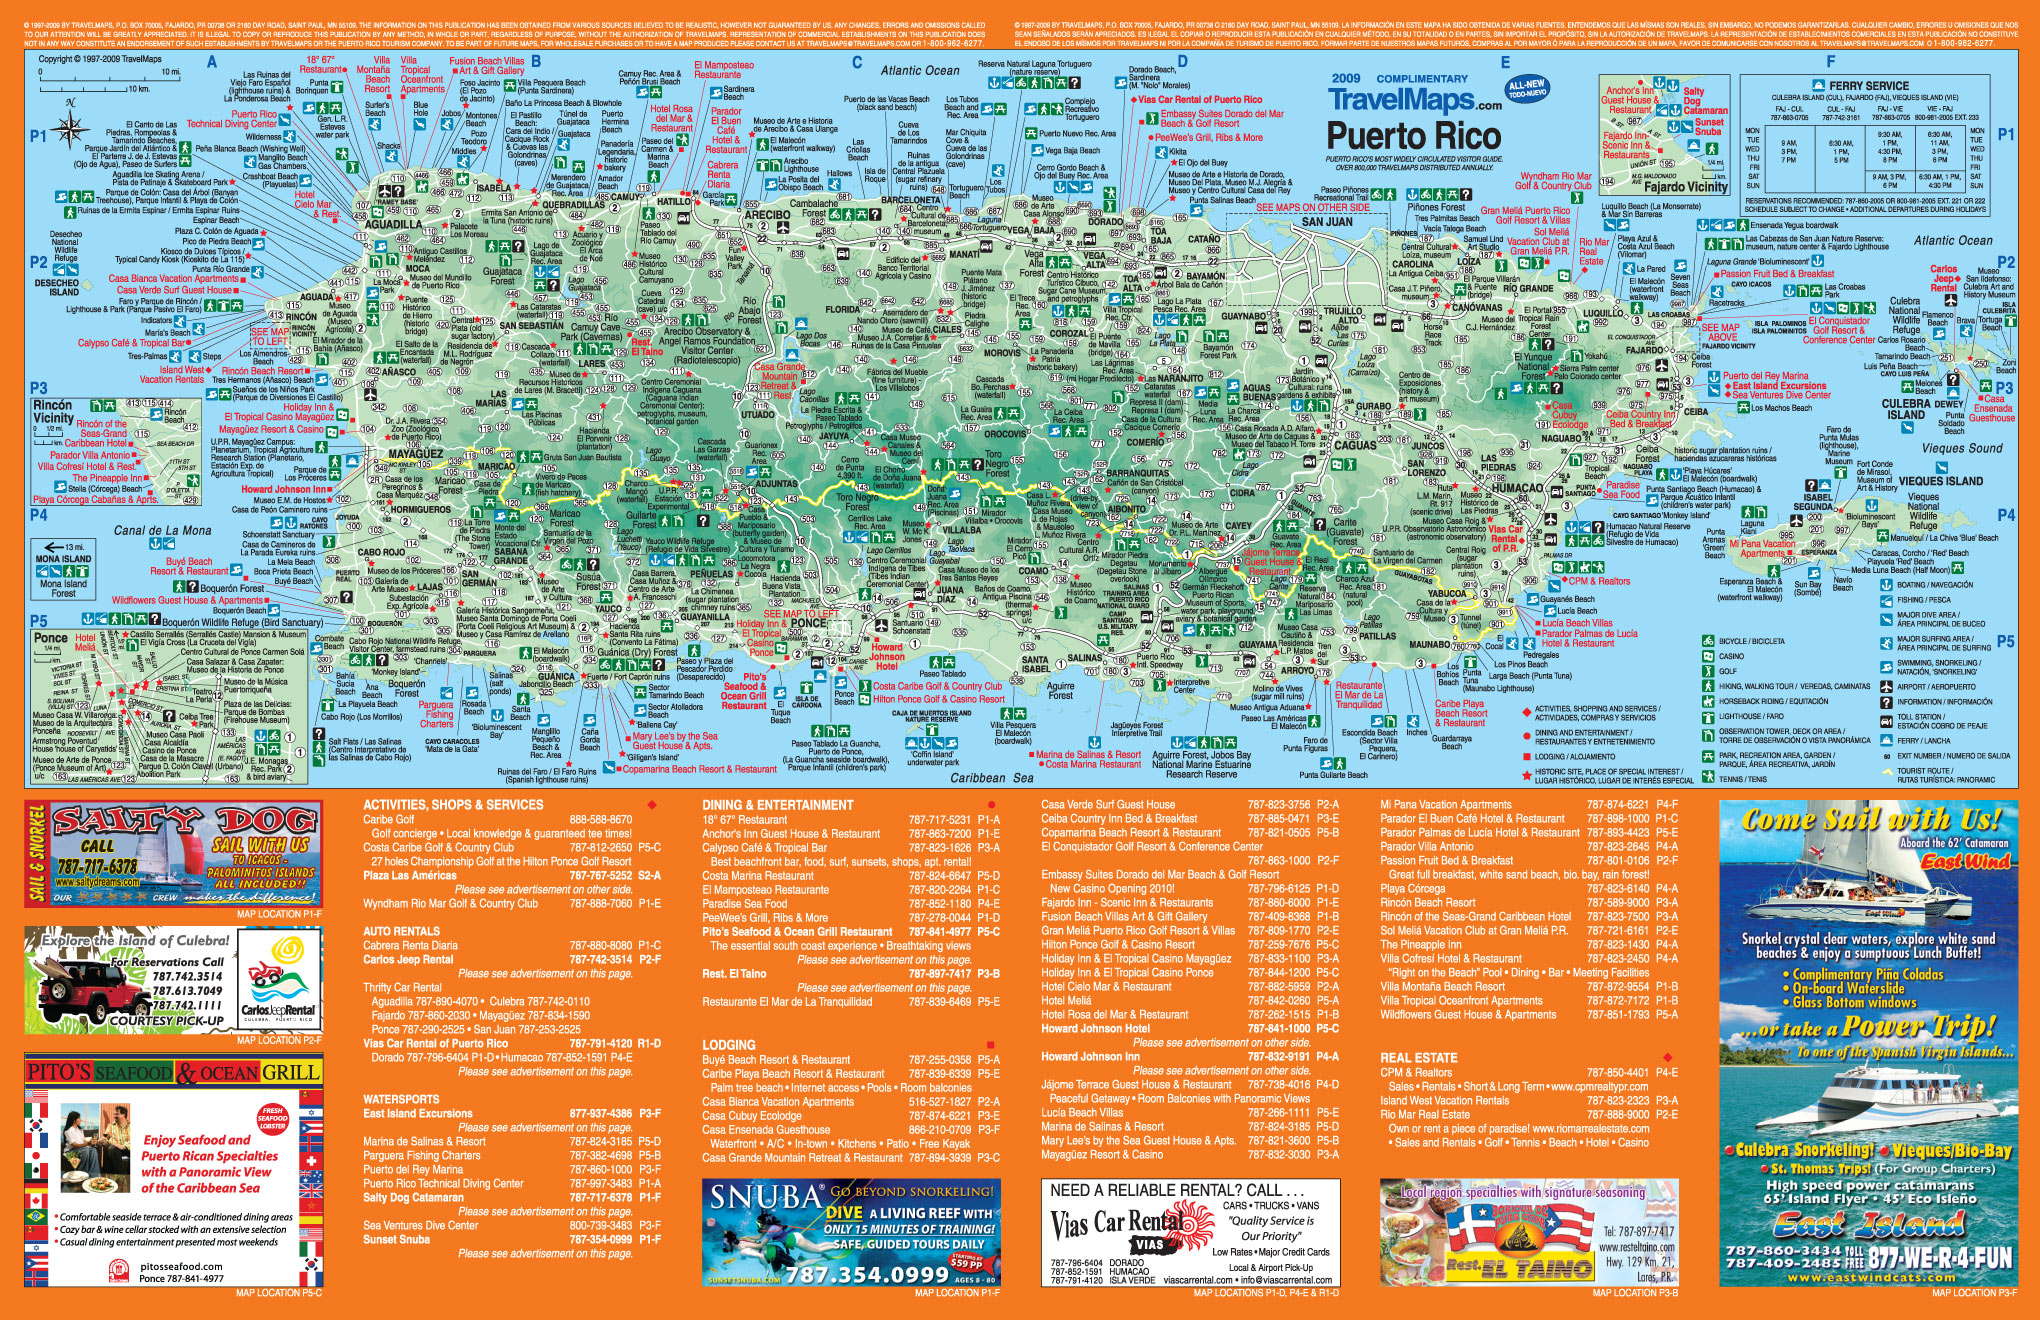 Puerto Rico Tourist Map Puerto Rico mappery – Tourist Map Of San Juan Puerto Rico